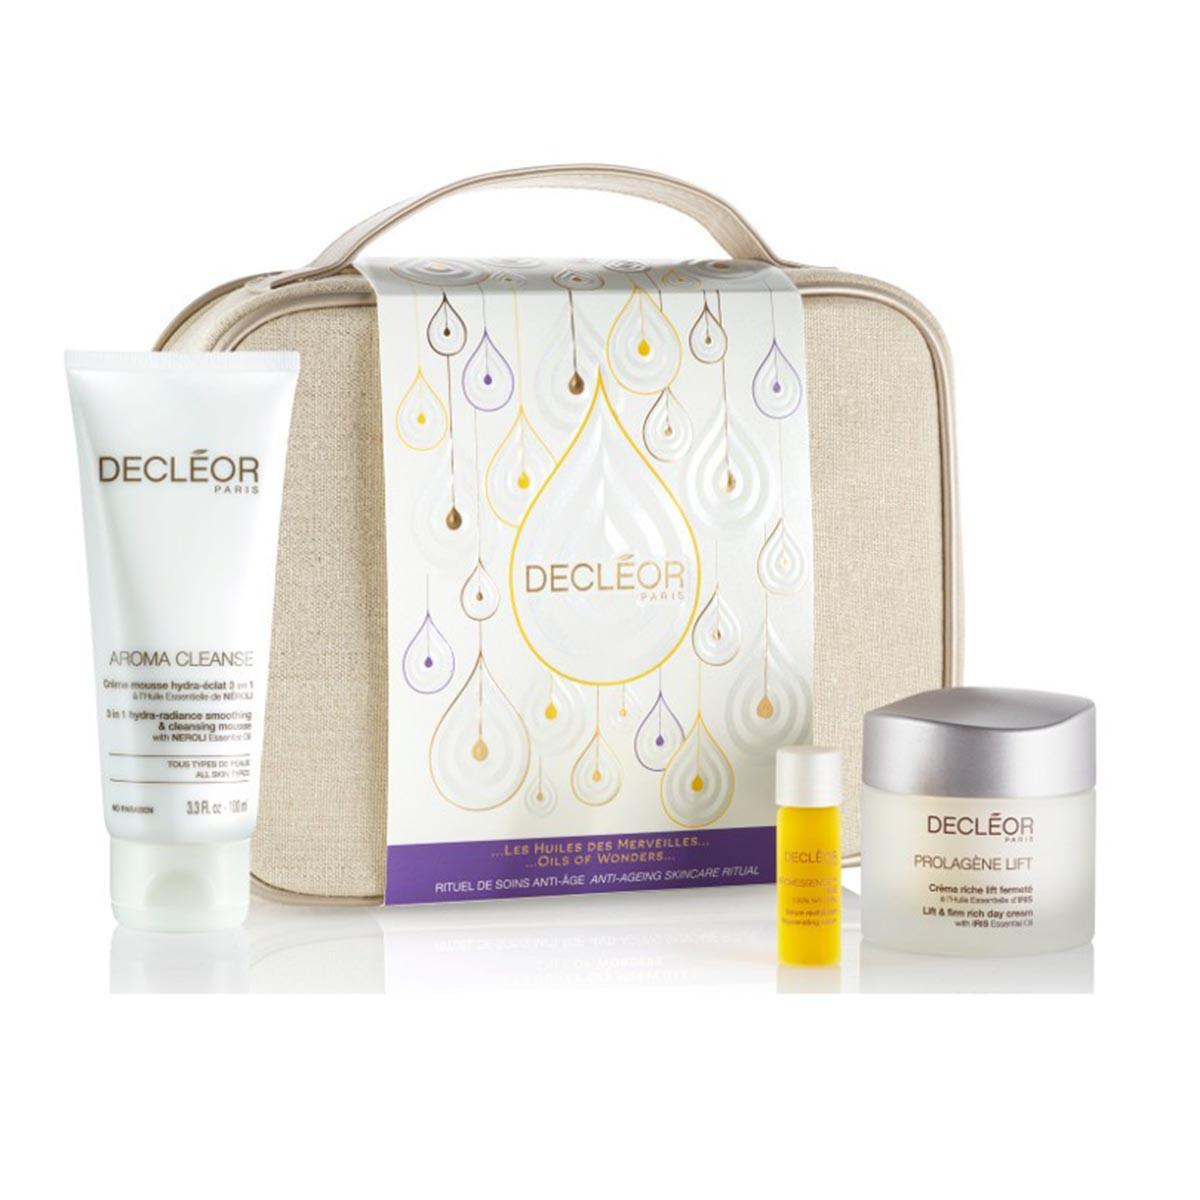 Decleor Prolagene Lieft Creme Riche 50 ml Aroma Cleanse Creme Mousse Hydraeclat 100 ml Aromessence Iris Serum 5 ml